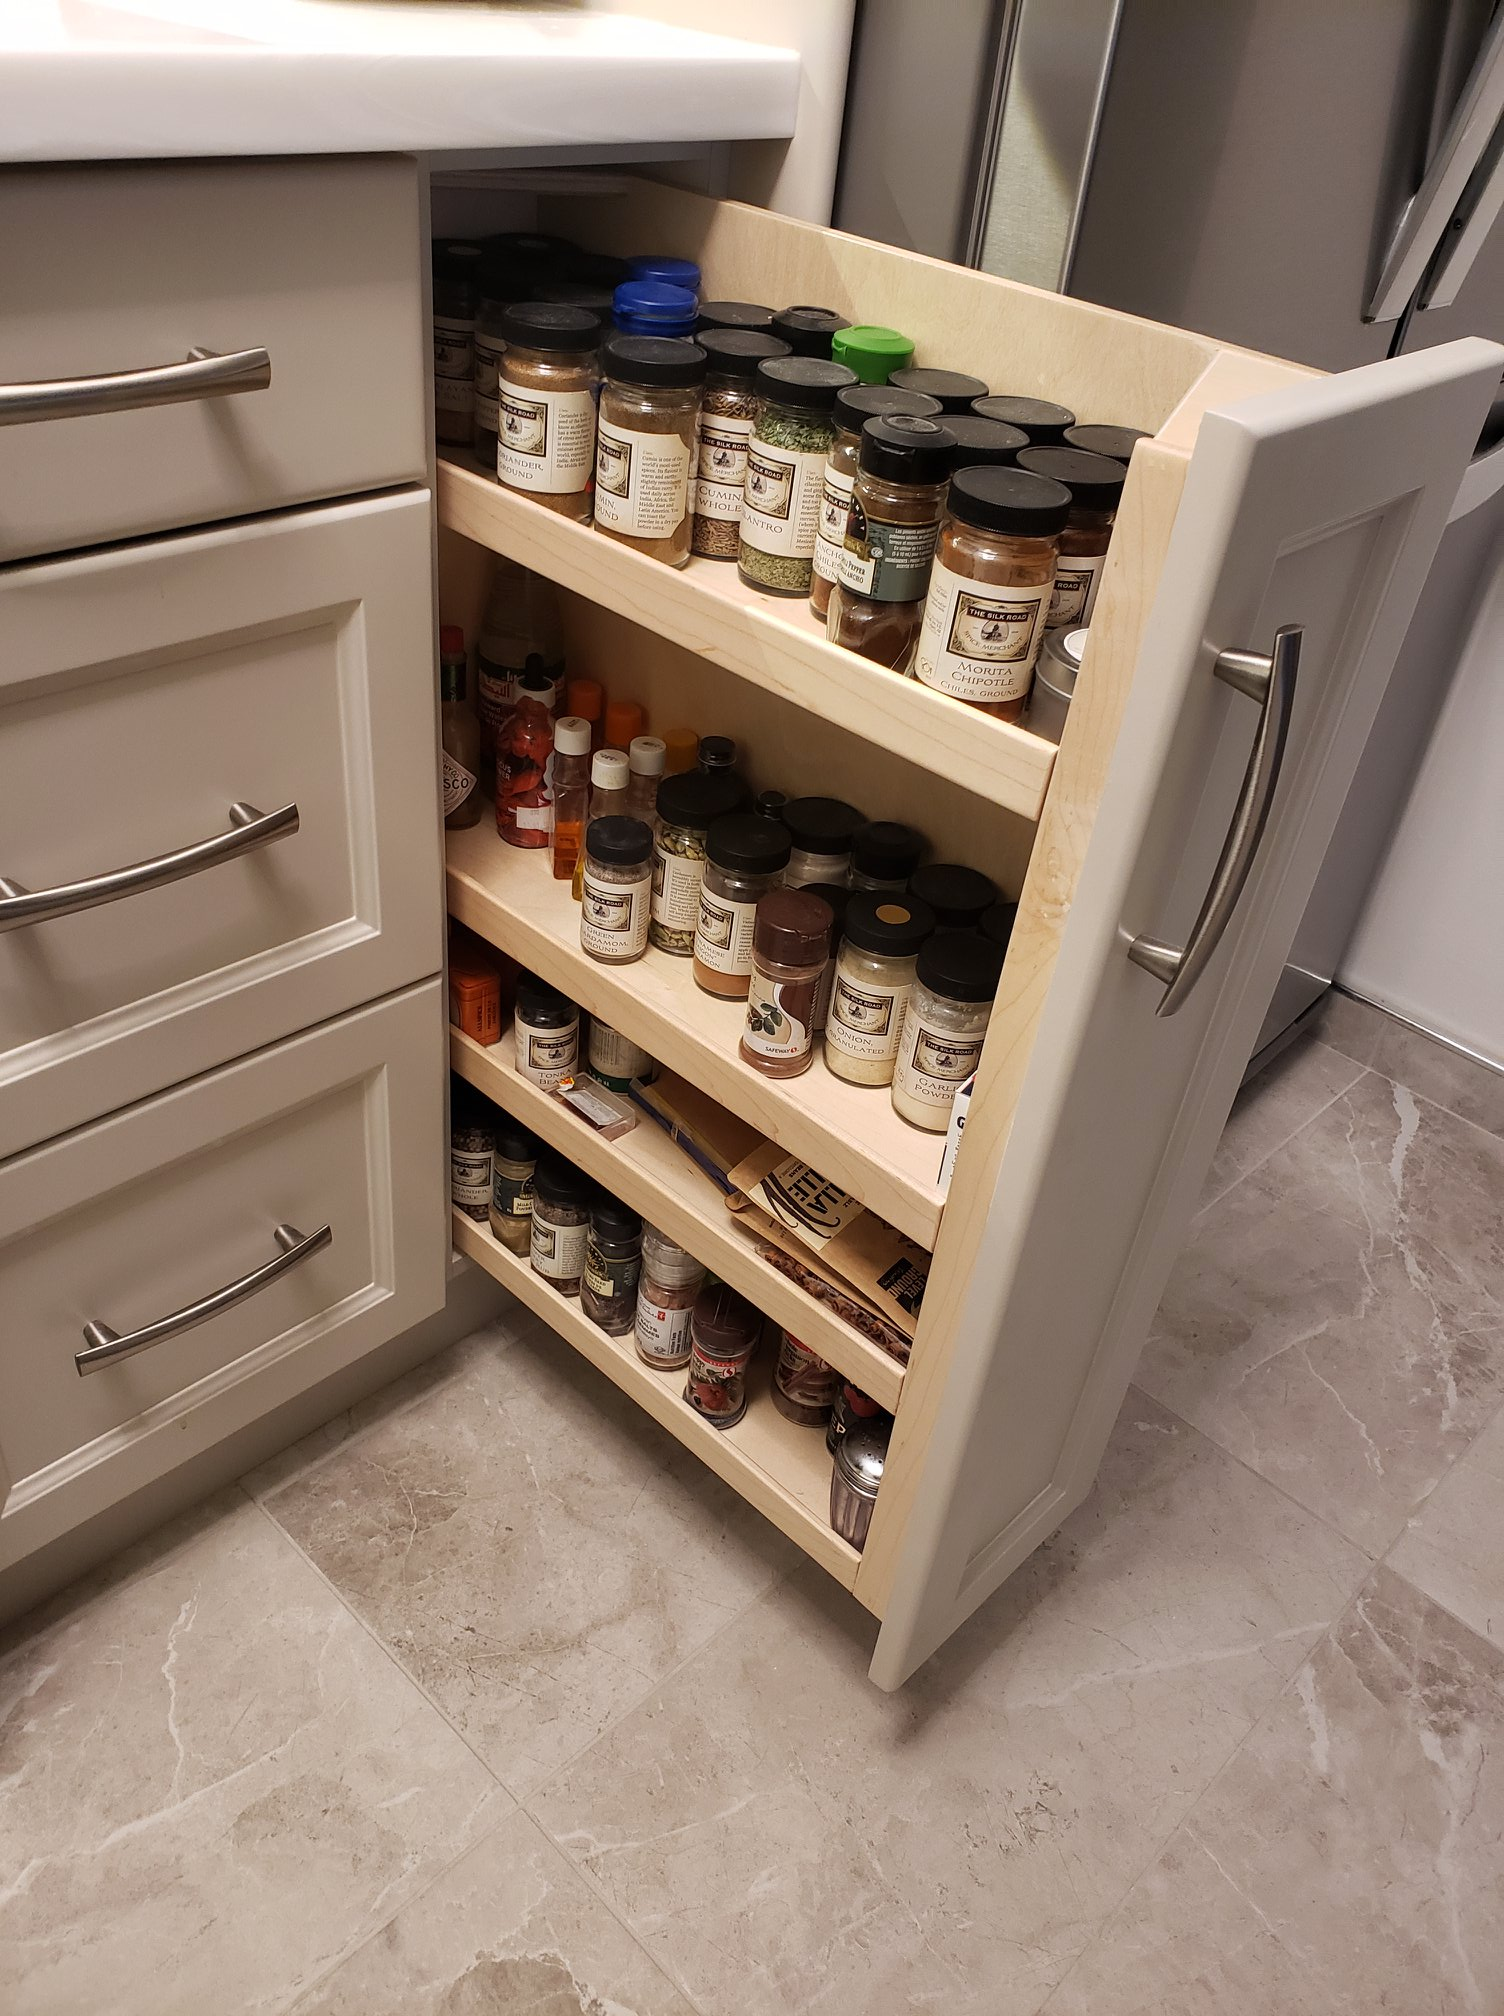 Here is the pull out spice rack all loaded up with my client's spices for cooking.